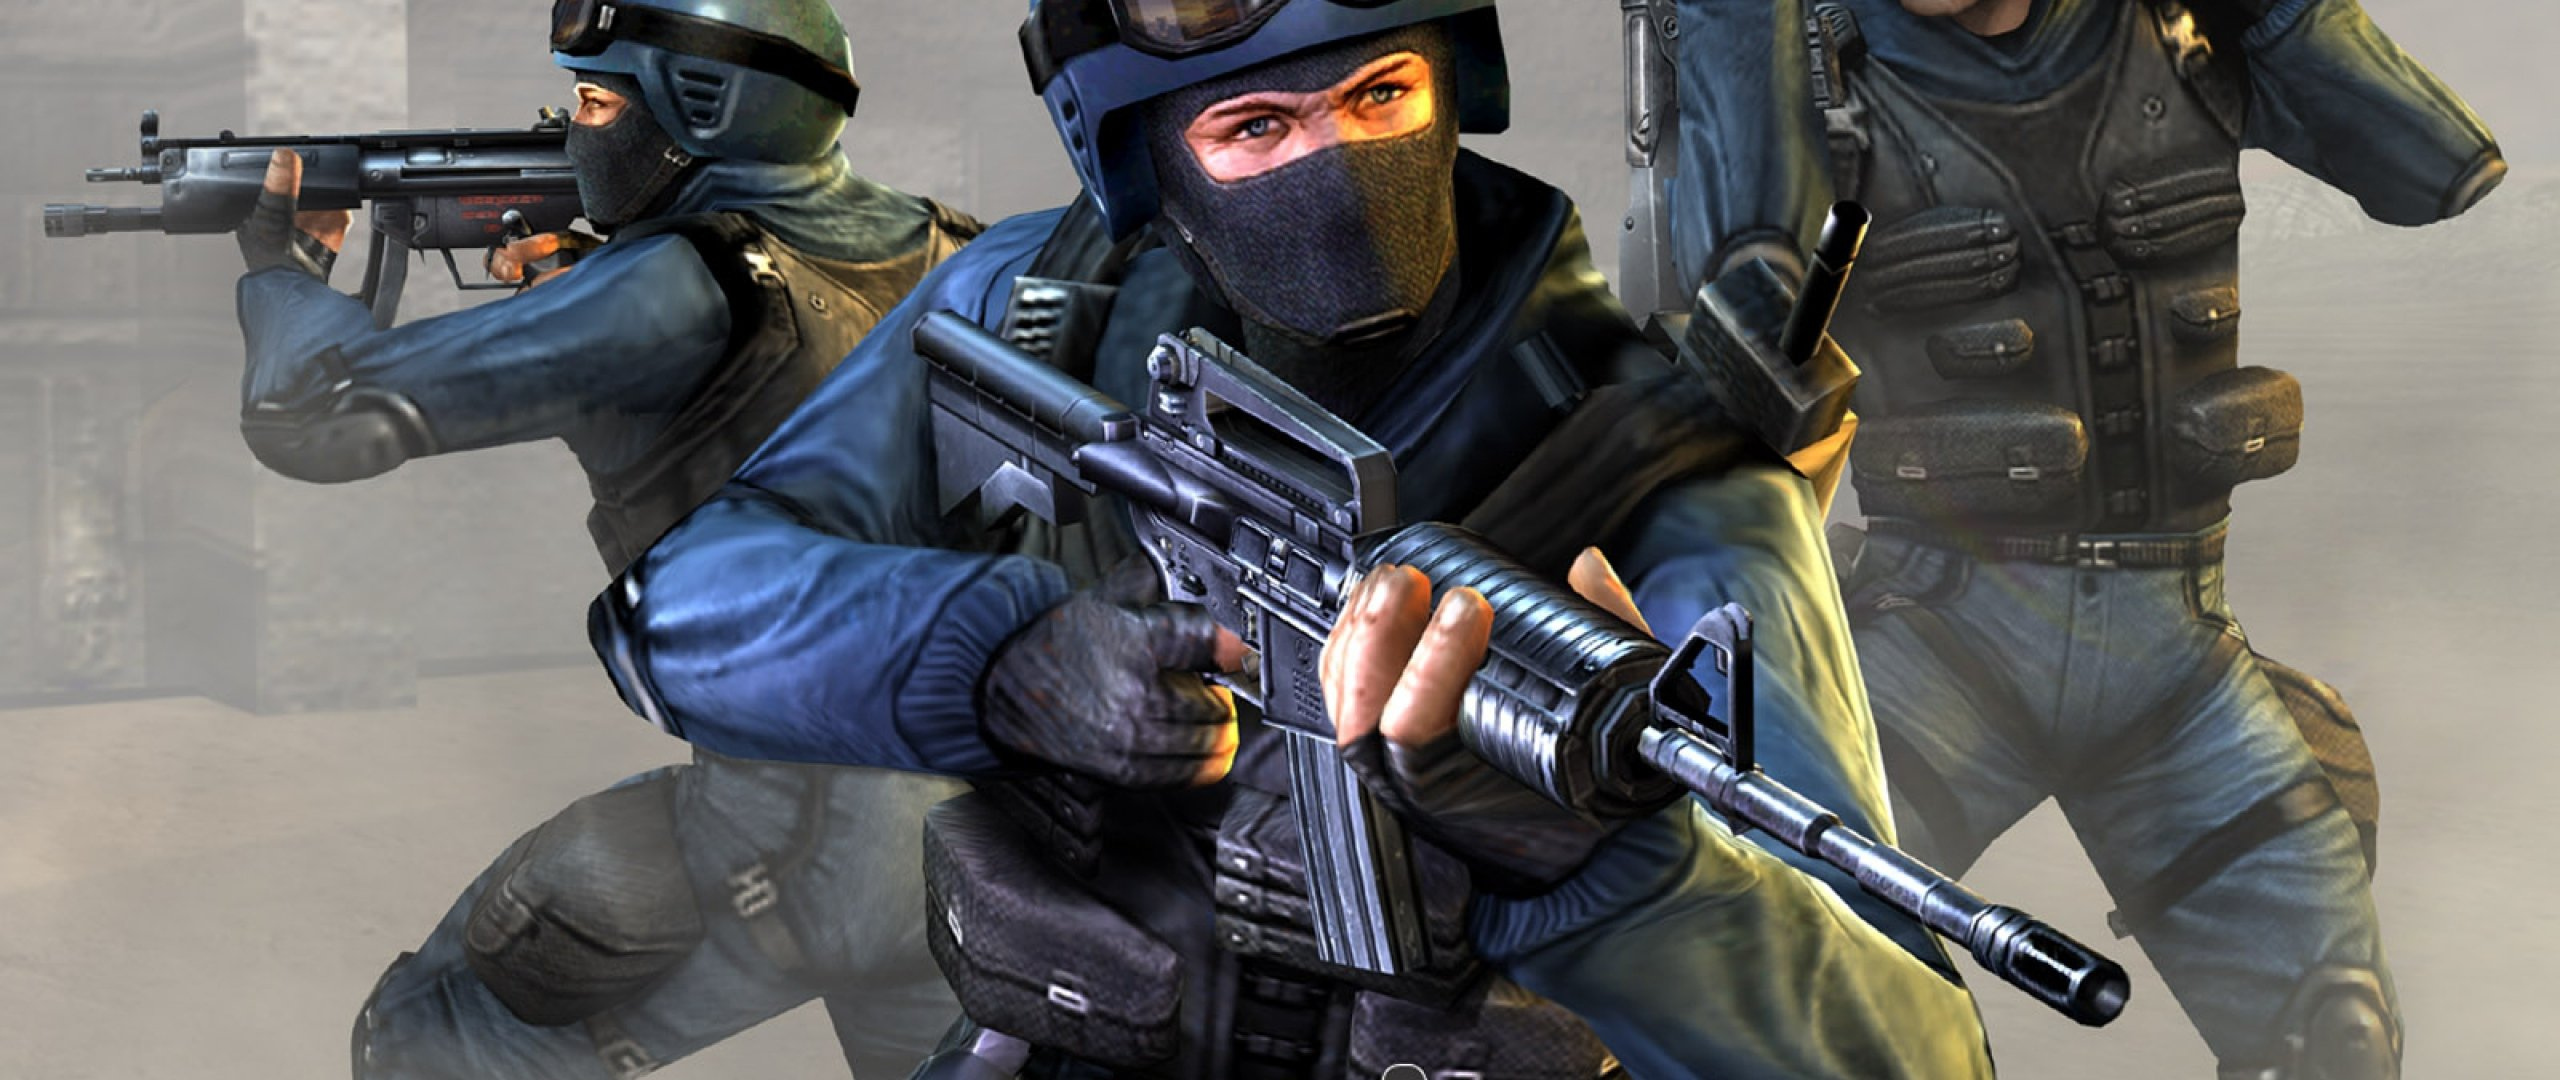 COUNTER STRIKE Shooter Military Action Weapon Gun Online